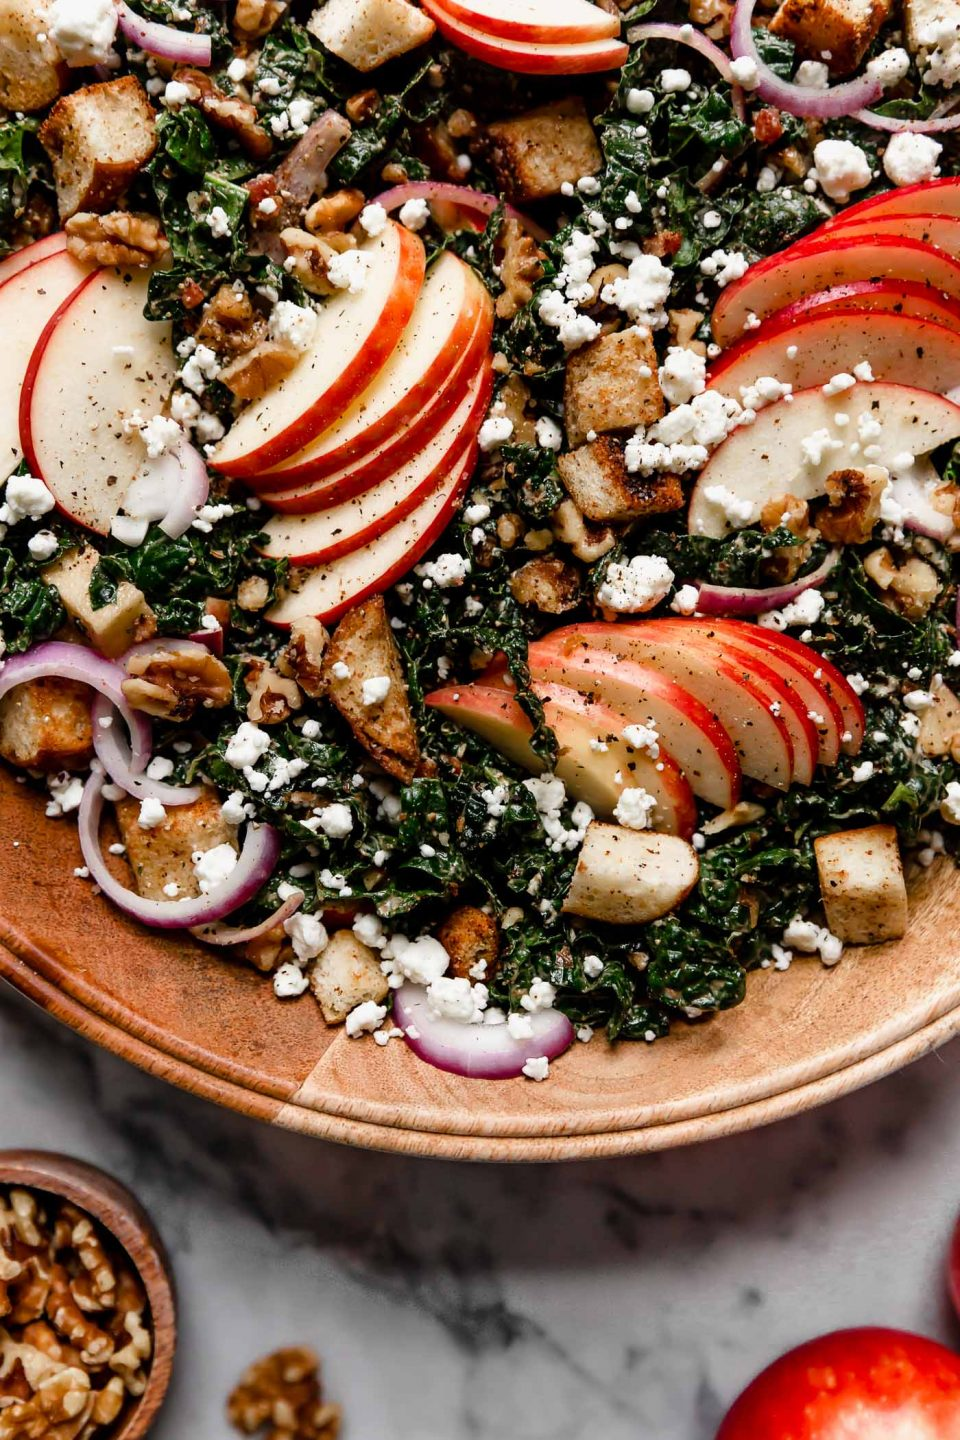 Tossed Autumn Kale salad in a large wooden serving bowl sitting. The salad is topped with clusters of sliced honeycrisp apples & croutons. The serving bowl is atop a white marble surface, next to honeycrisp apples & whole walnuts.